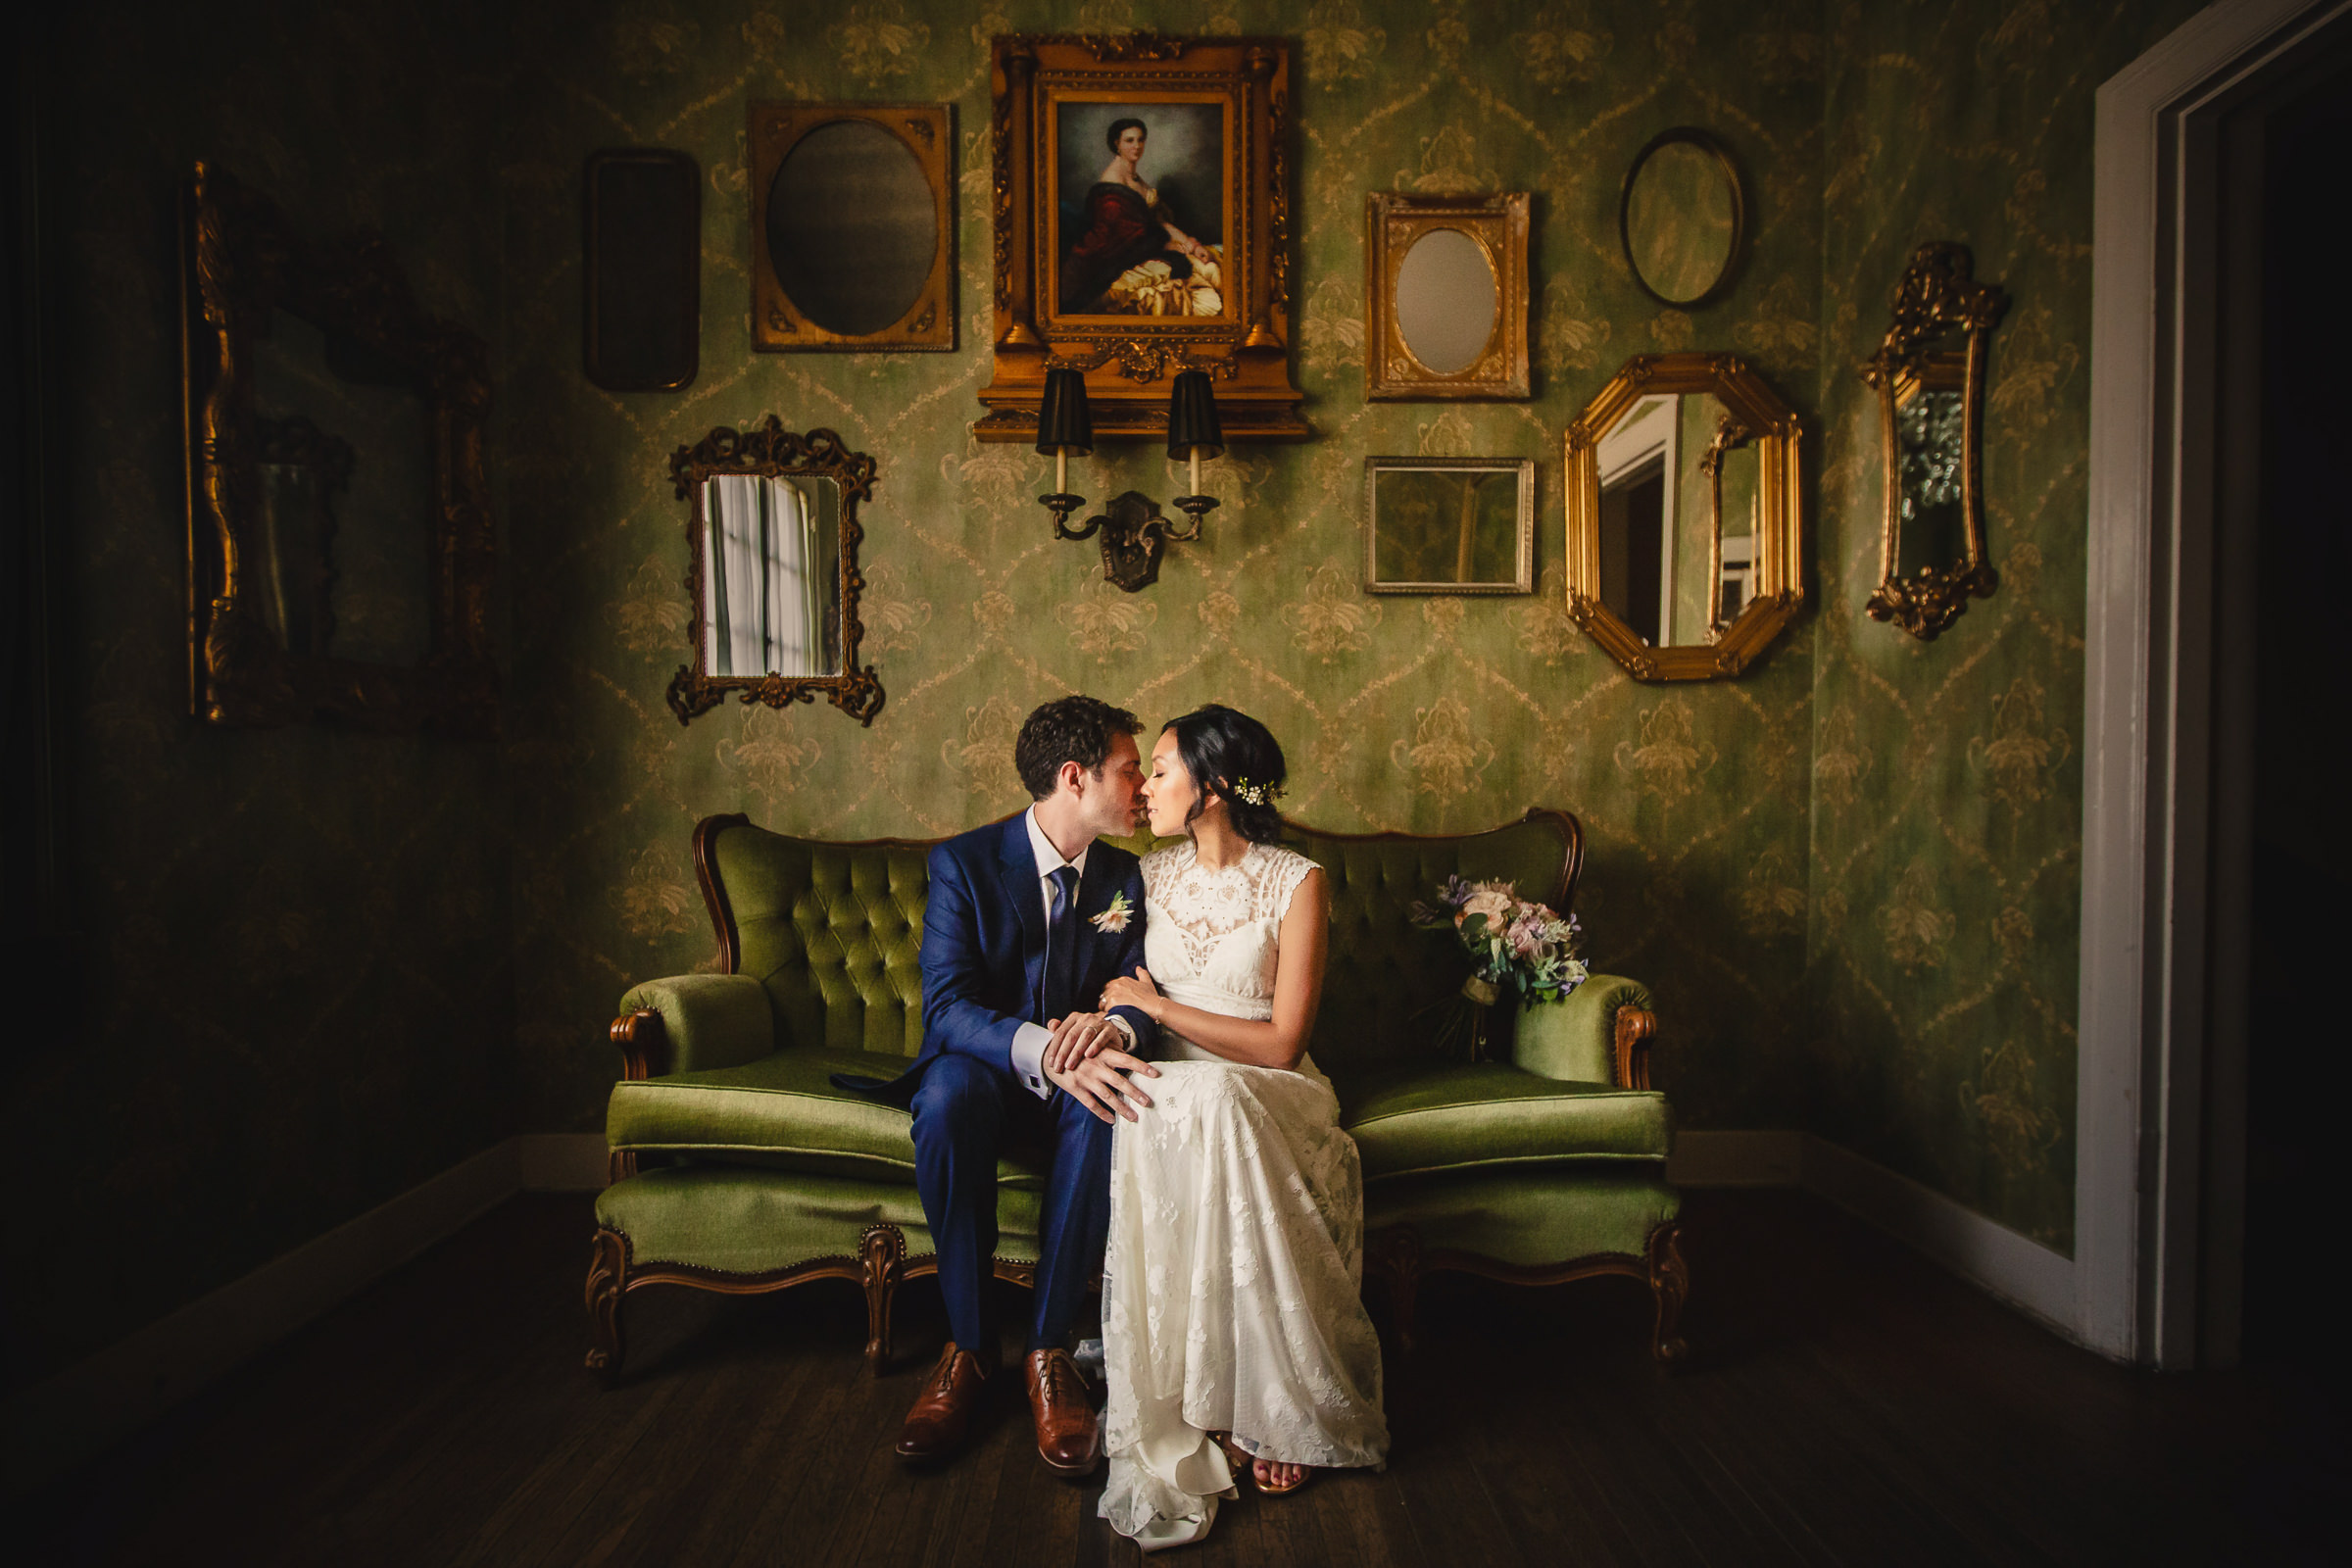 The Ebell Club - Couple kiss in antique room - photo by M. Hart - Los Angeles photographer